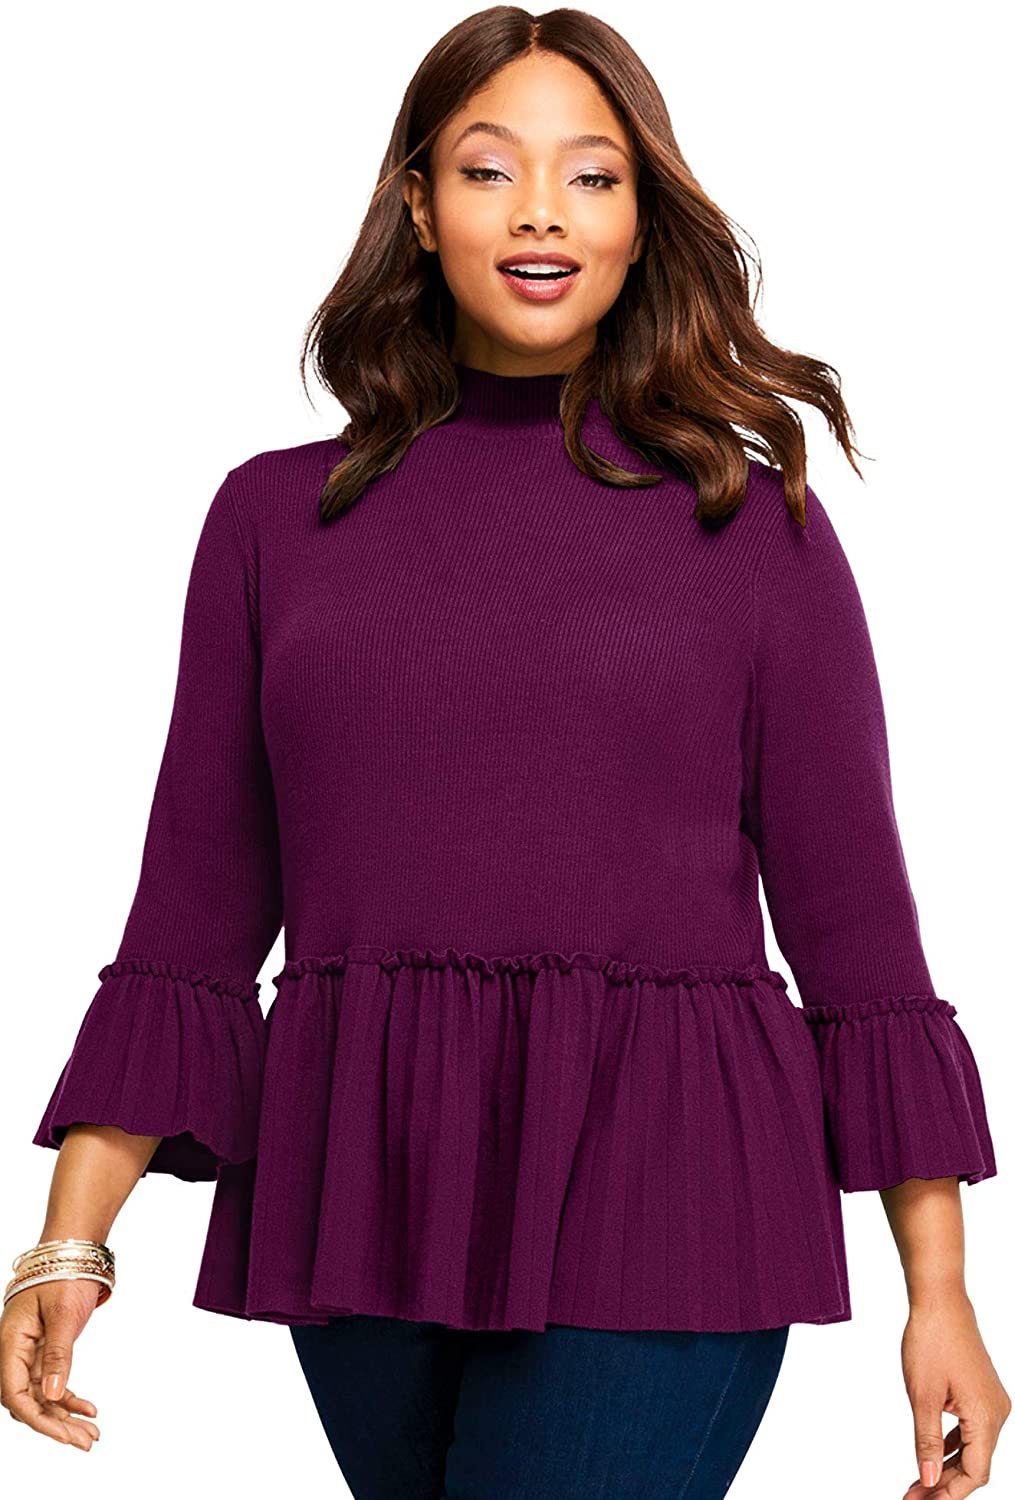 Plus Size Knit Ensemble 02